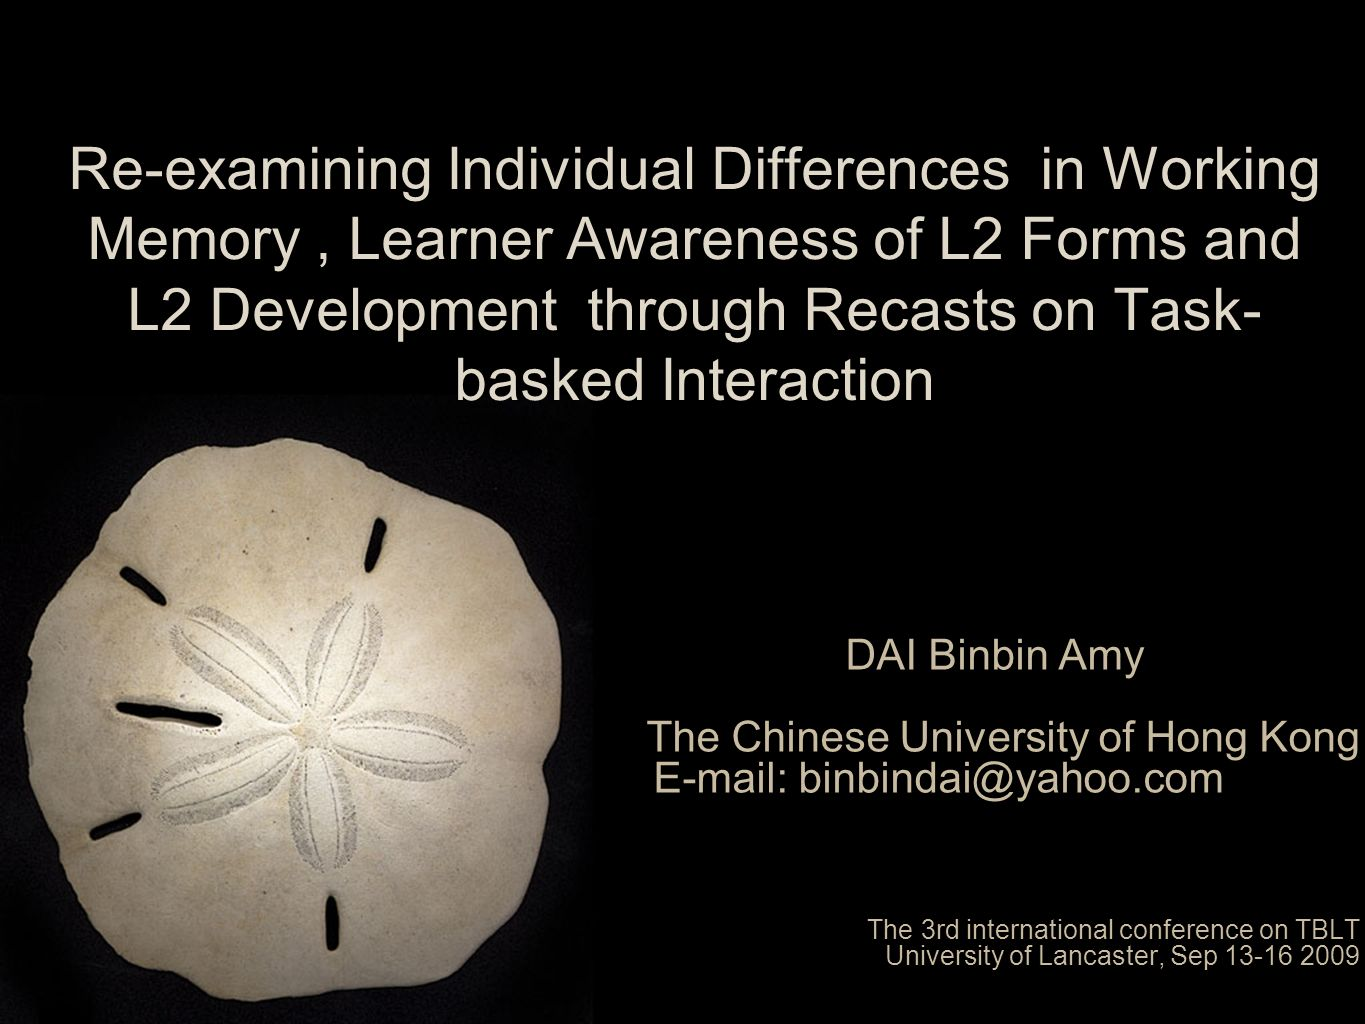 Re-examining Individual Differences in Working Memory , Learner Awareness of L2 Forms and L2 Development through Recasts on Task-basked Interaction